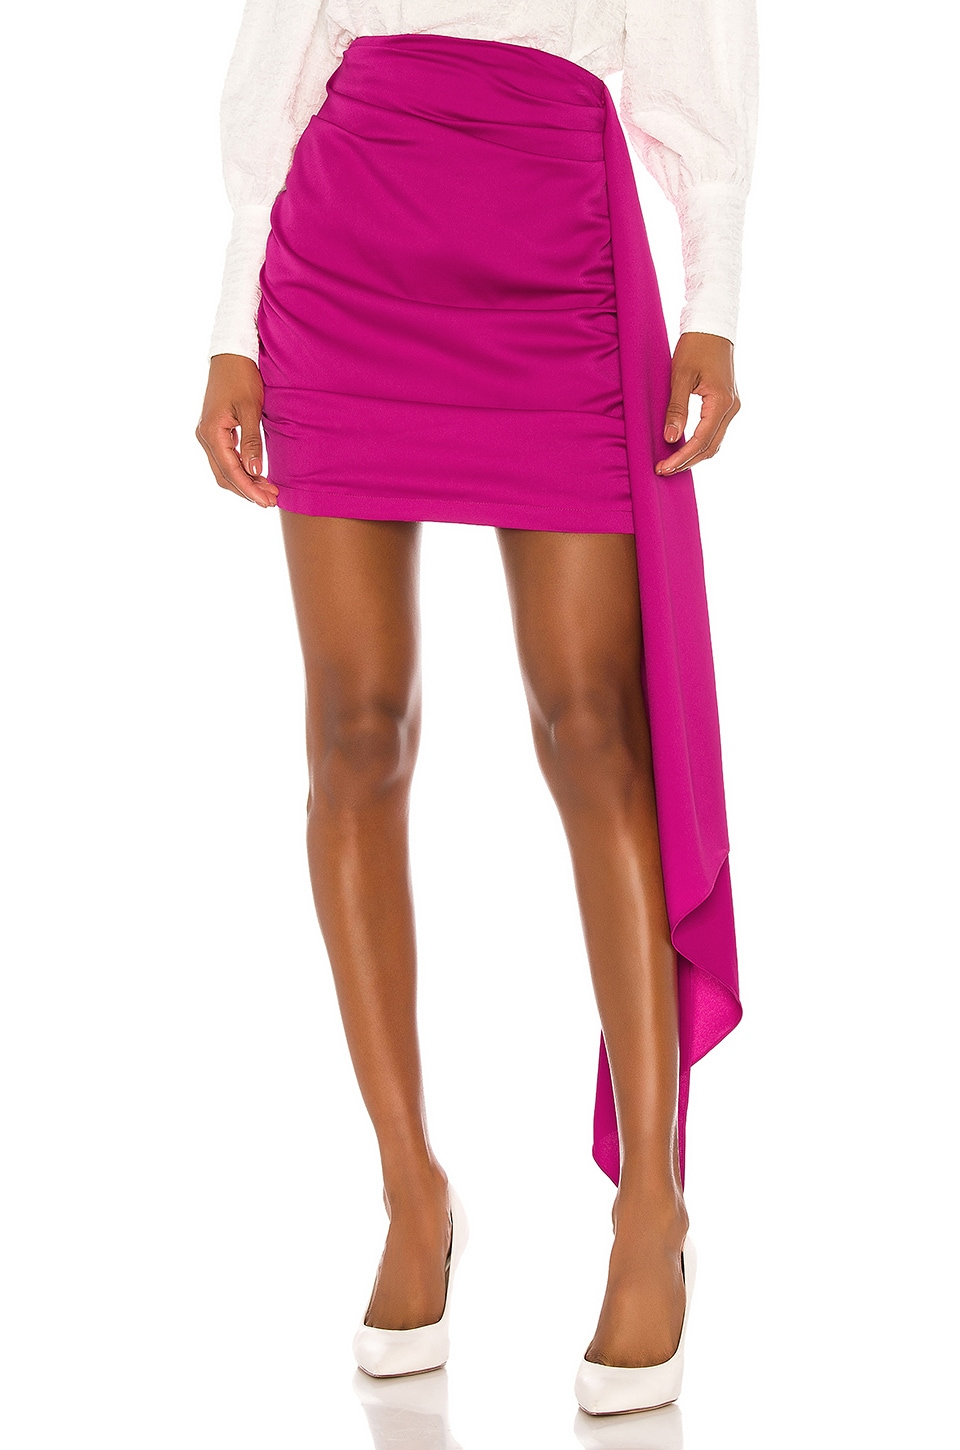 Atoir Turning Pages Skirt in Shocking Pink